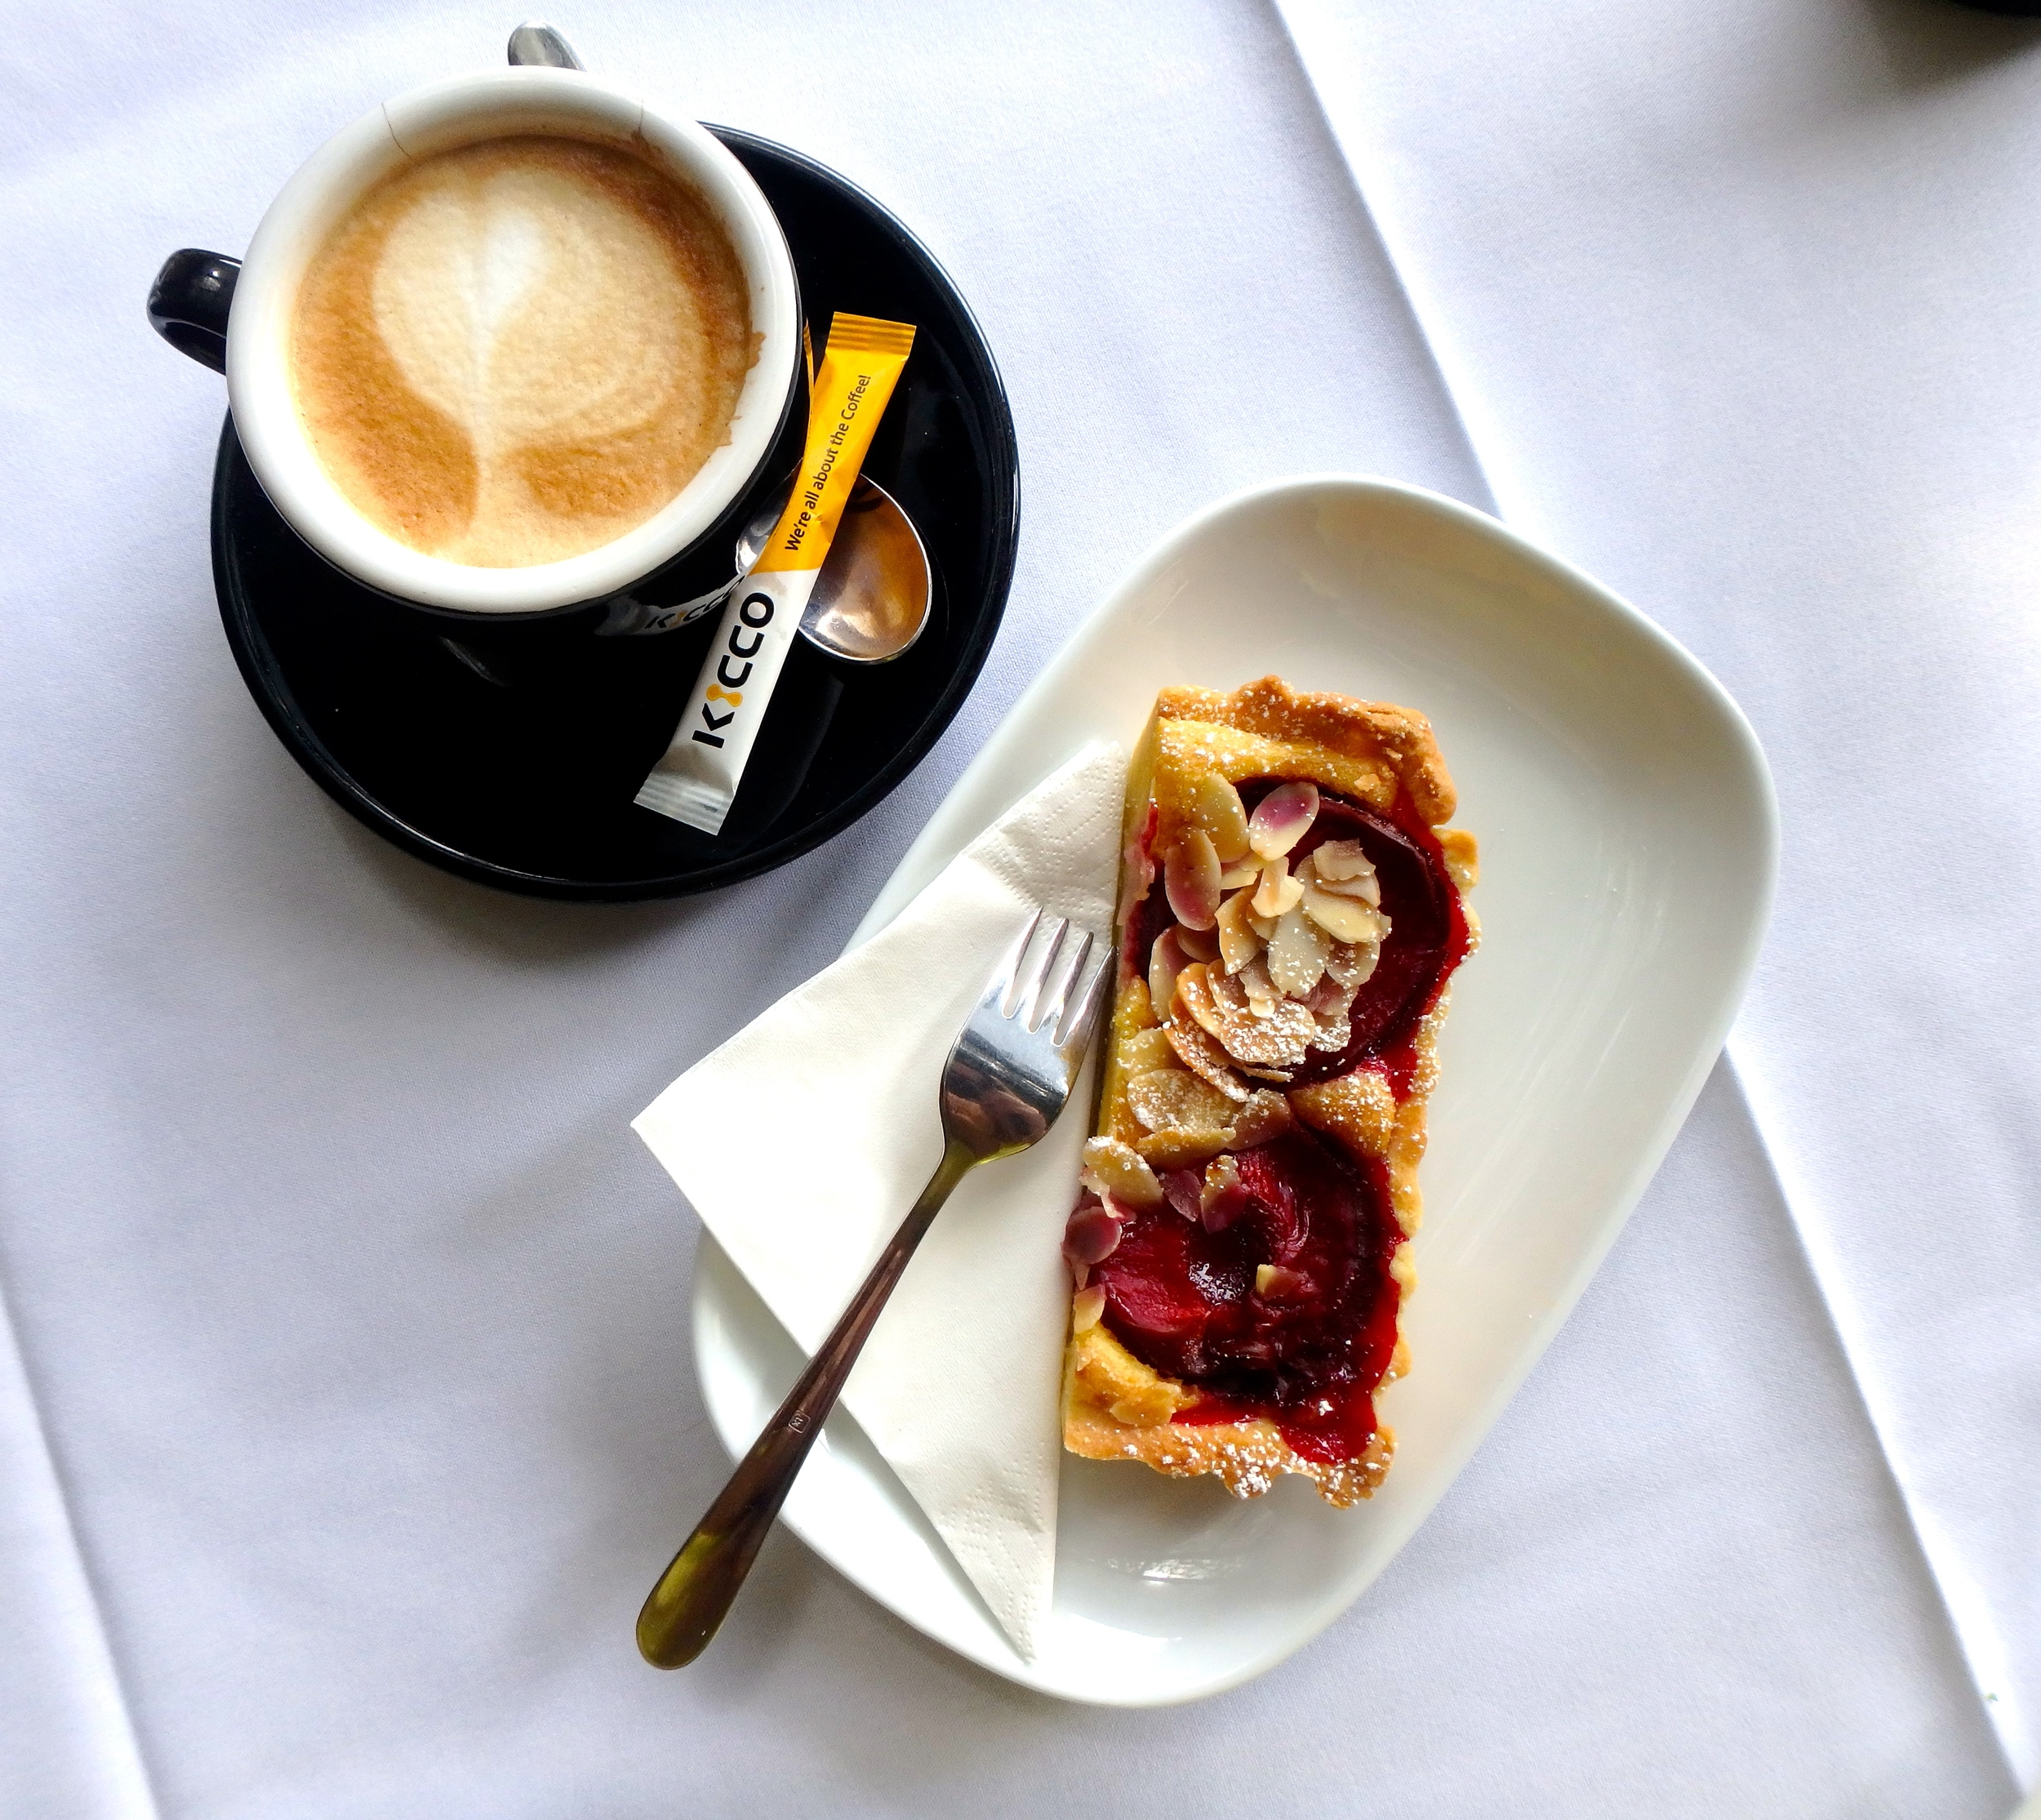 A delicious tart of blood plums, roasted almonds and buttery shortcrust pastry, served with the most amazing Bonsoy flat white I've ever had.